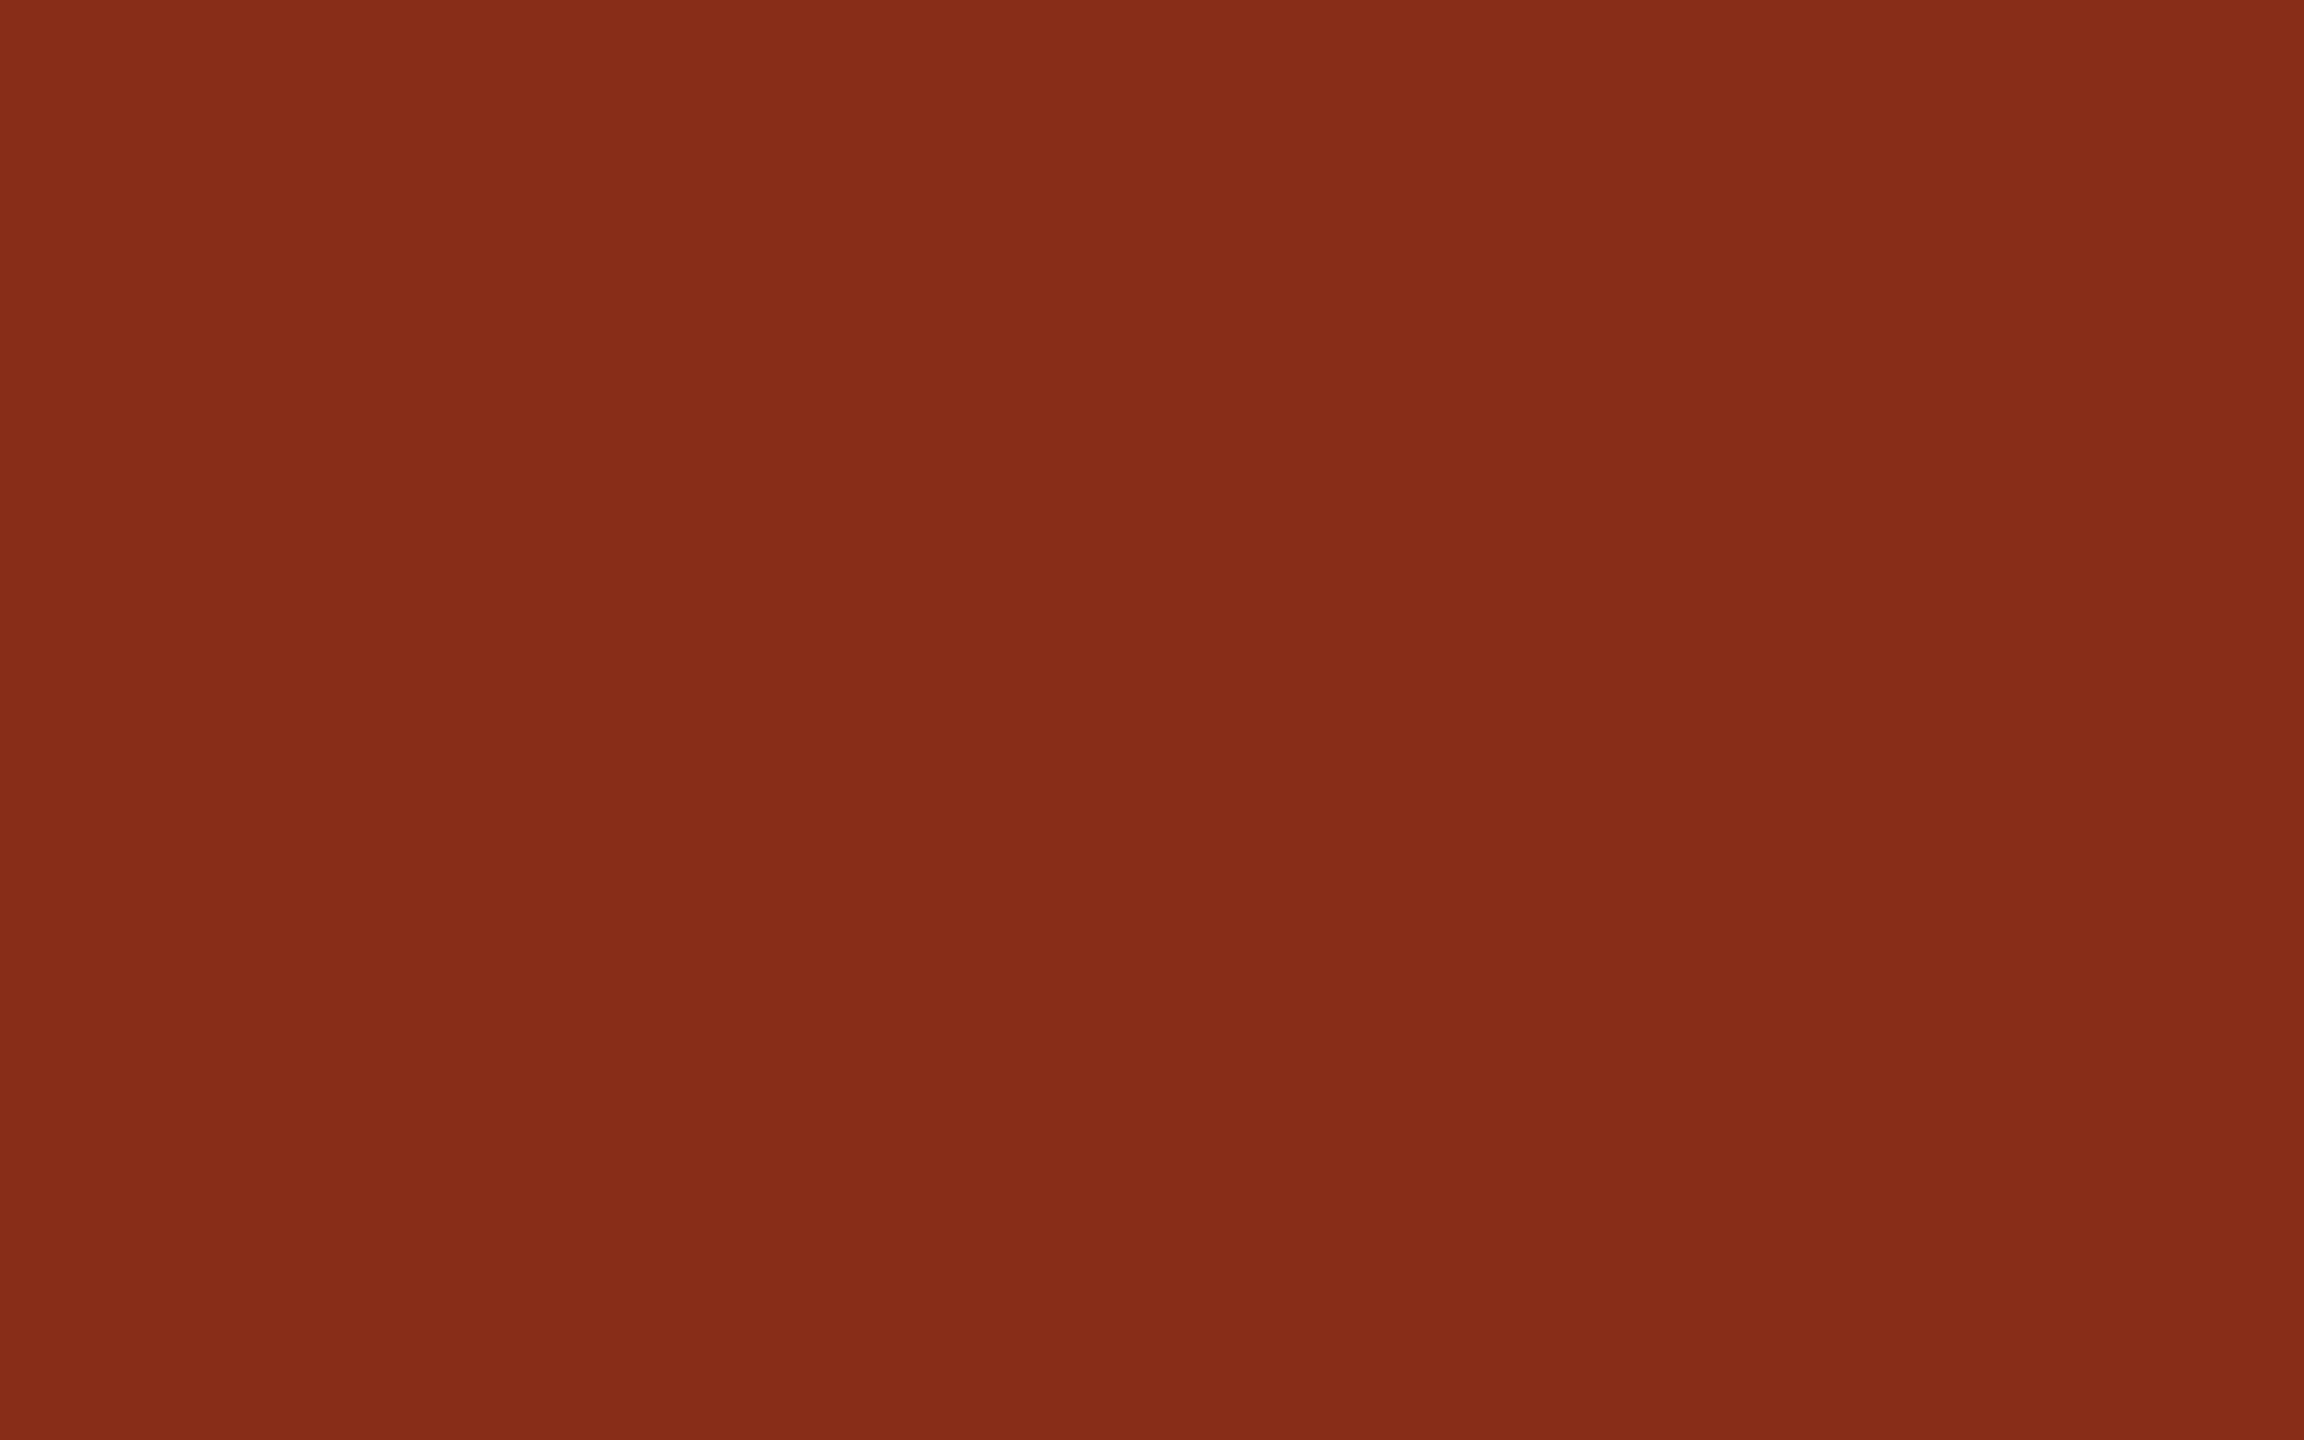 2304x1440 Sienna Solid Color Background